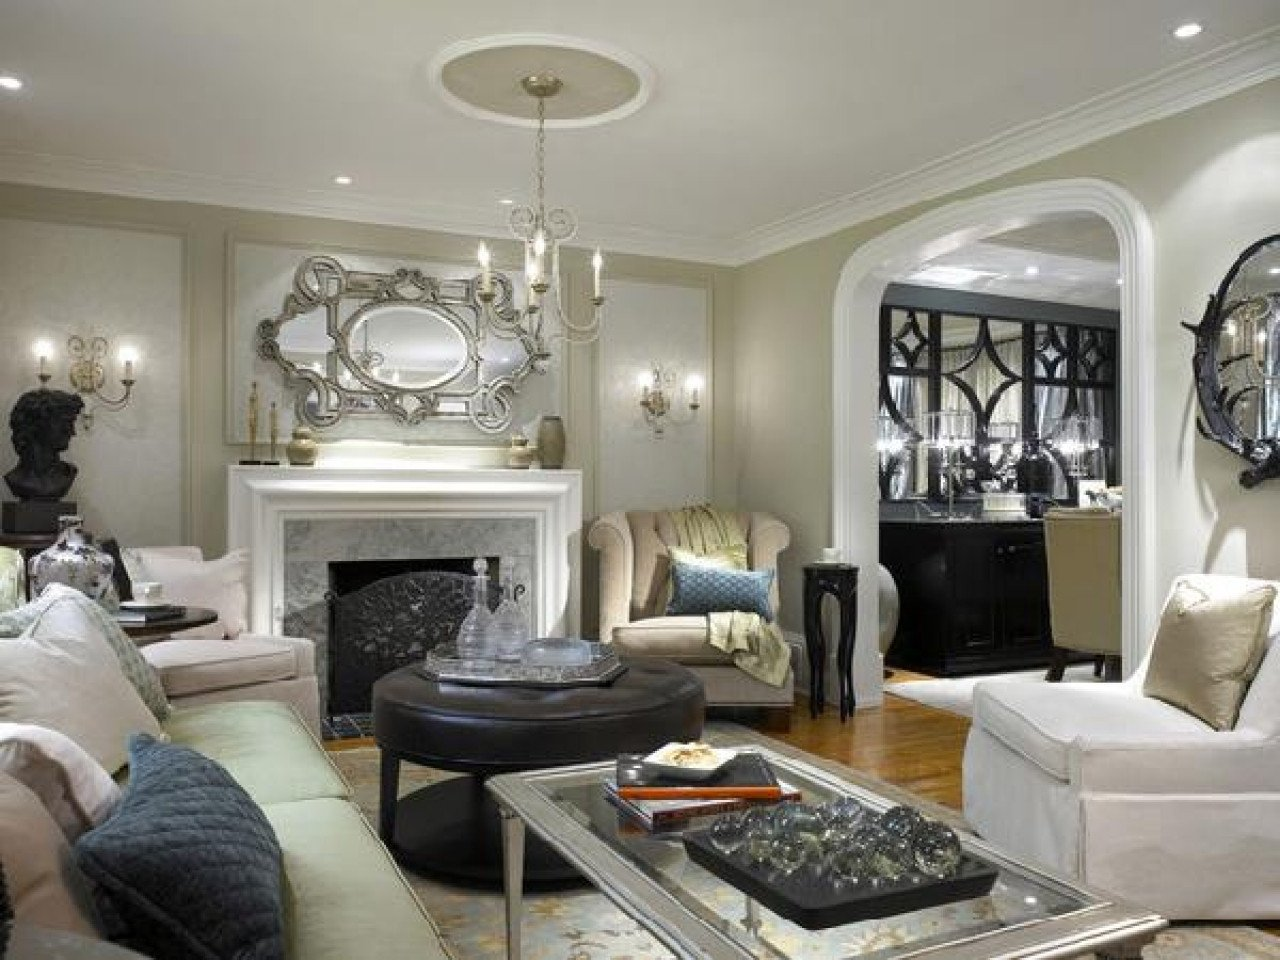 Small Living Roompaint Ideas Luxury Paint Ideas for Living Room with Narrow Space theydesign theydesign